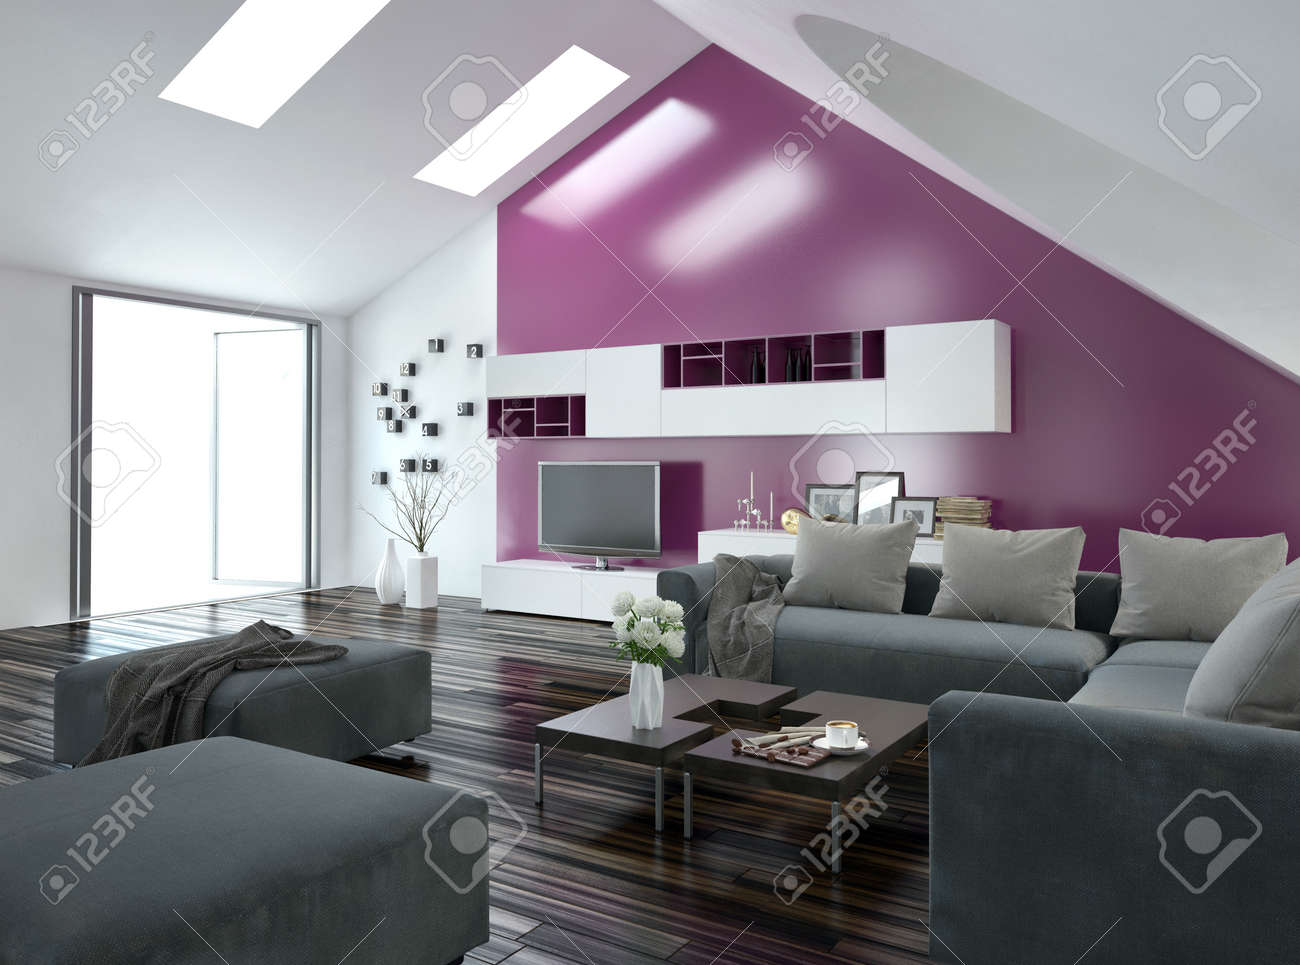 Modern apartment living room - Modern Apartment Living Room Interior With A Purple Accent Wall And Sloping Ceiling With Skylights Above